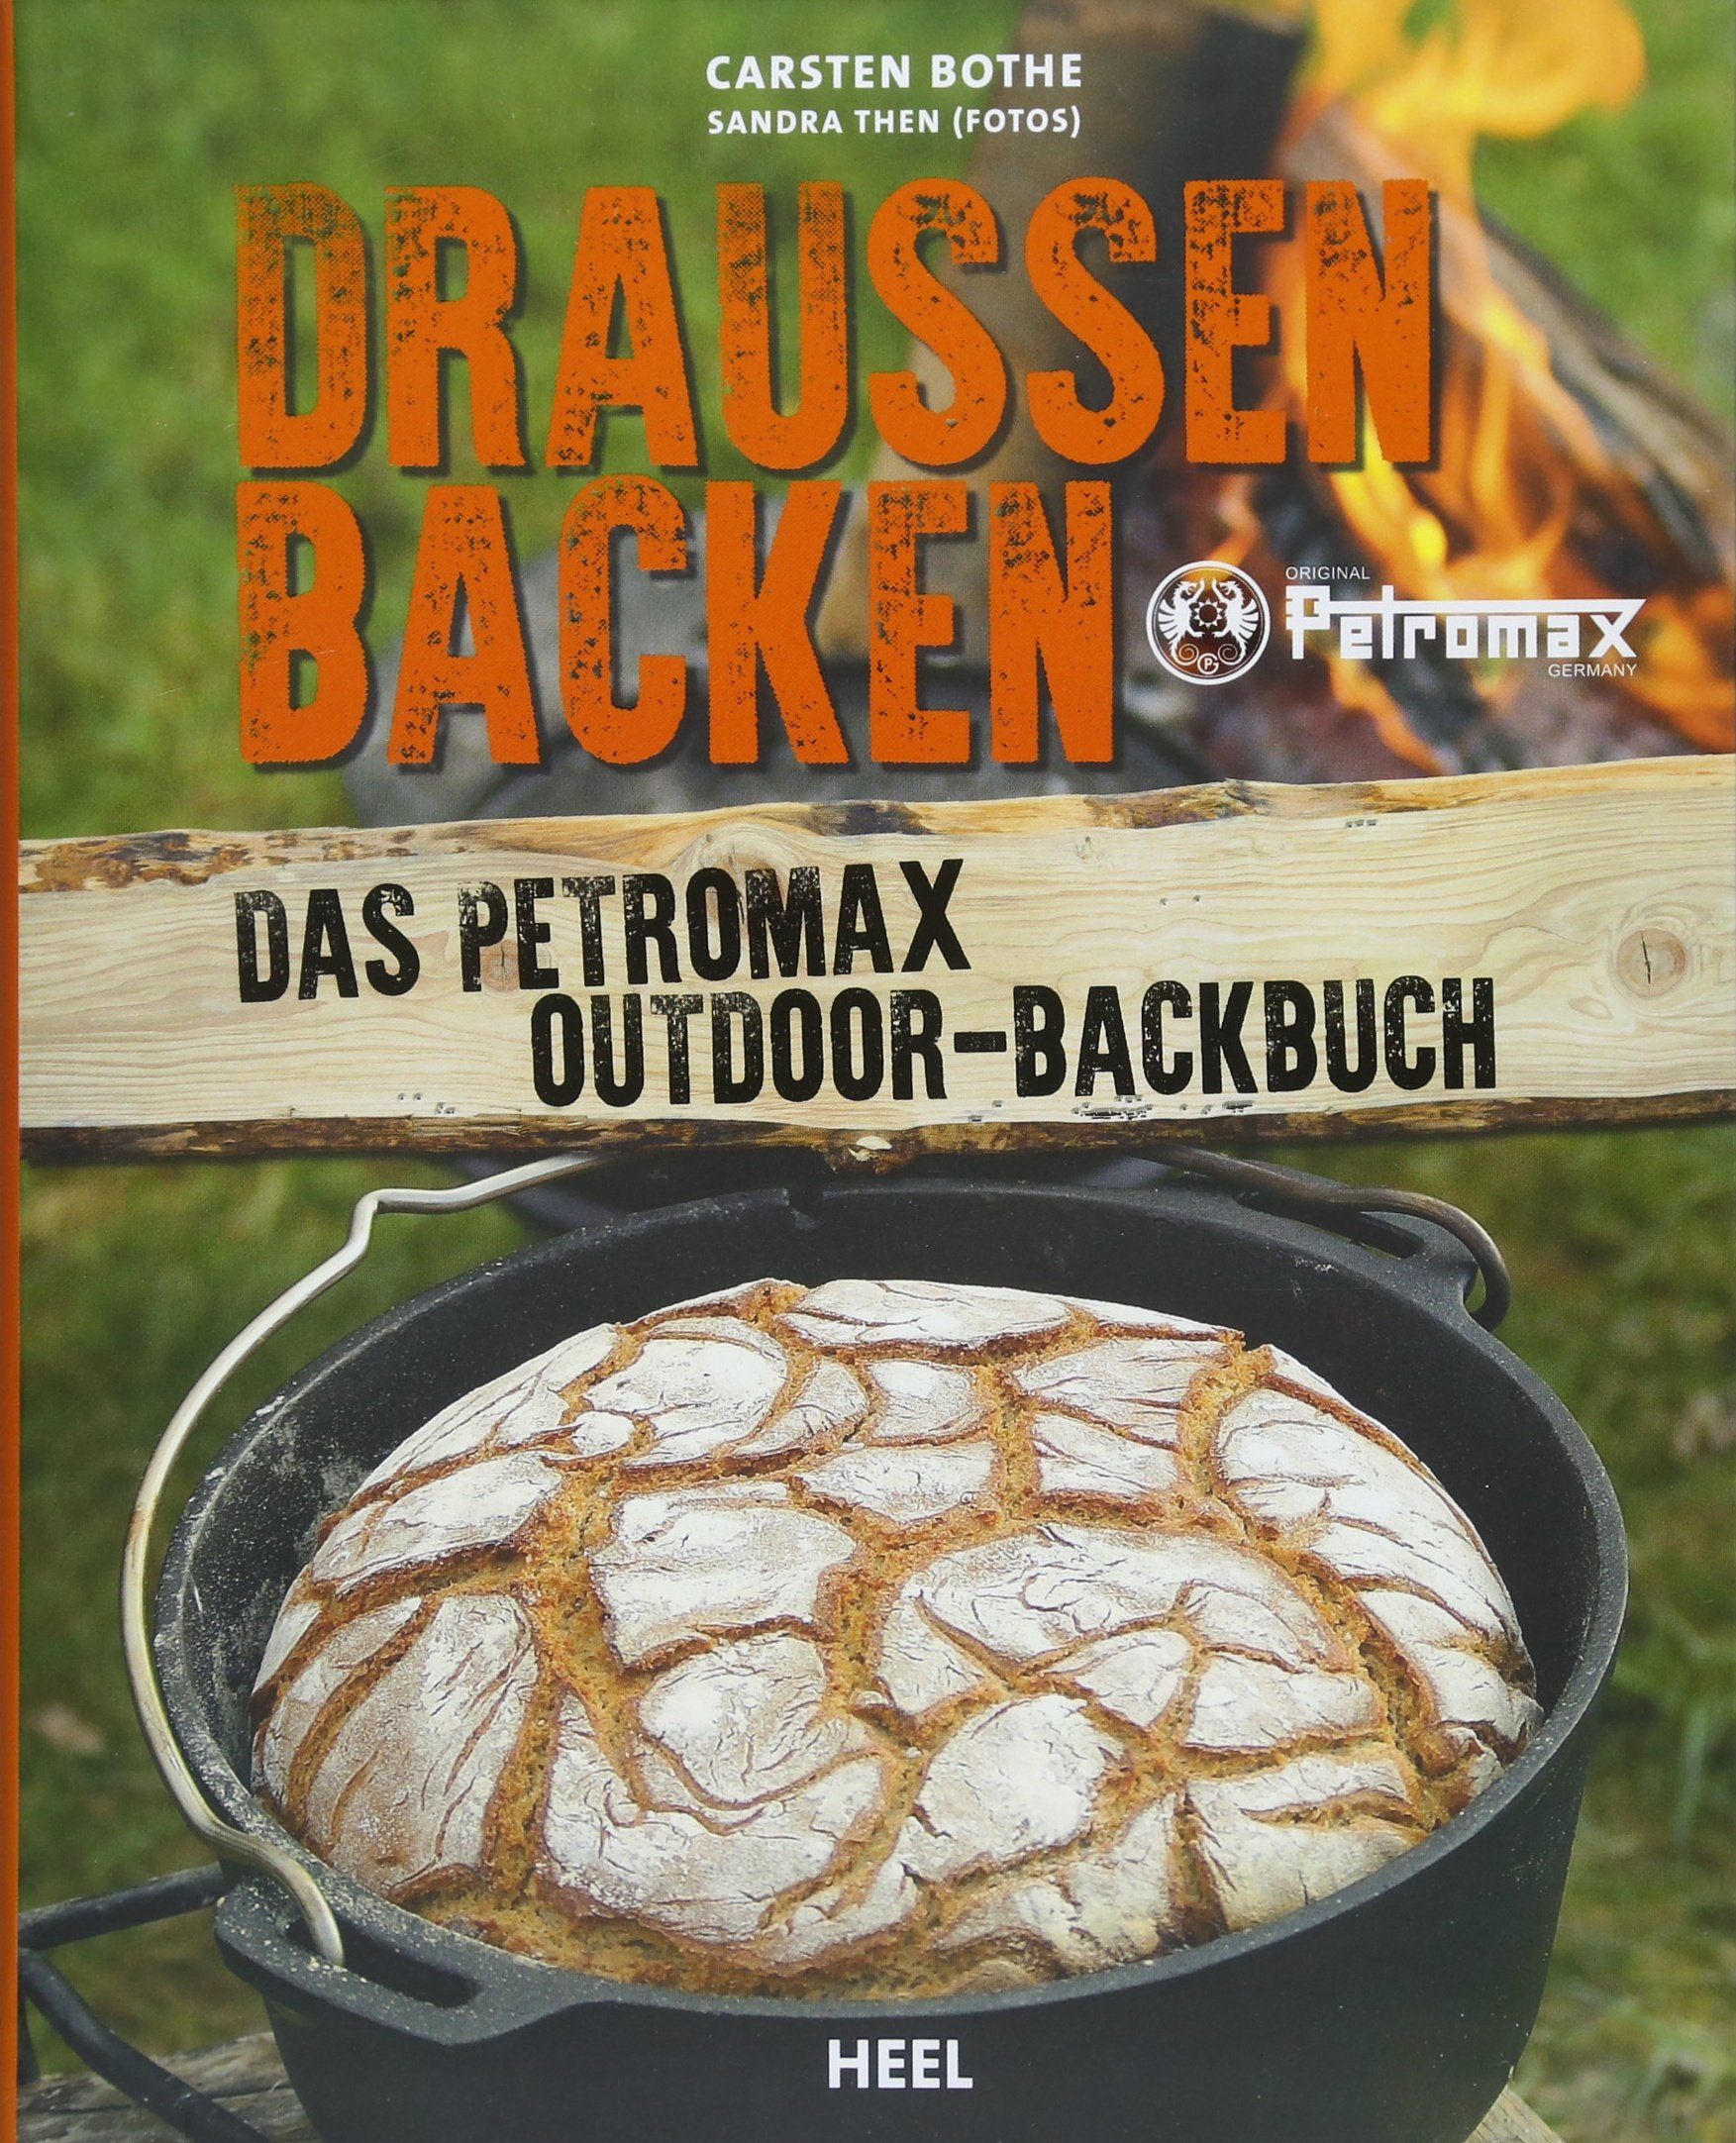 draussen-backen-das-petromax-outdoor-backbuch